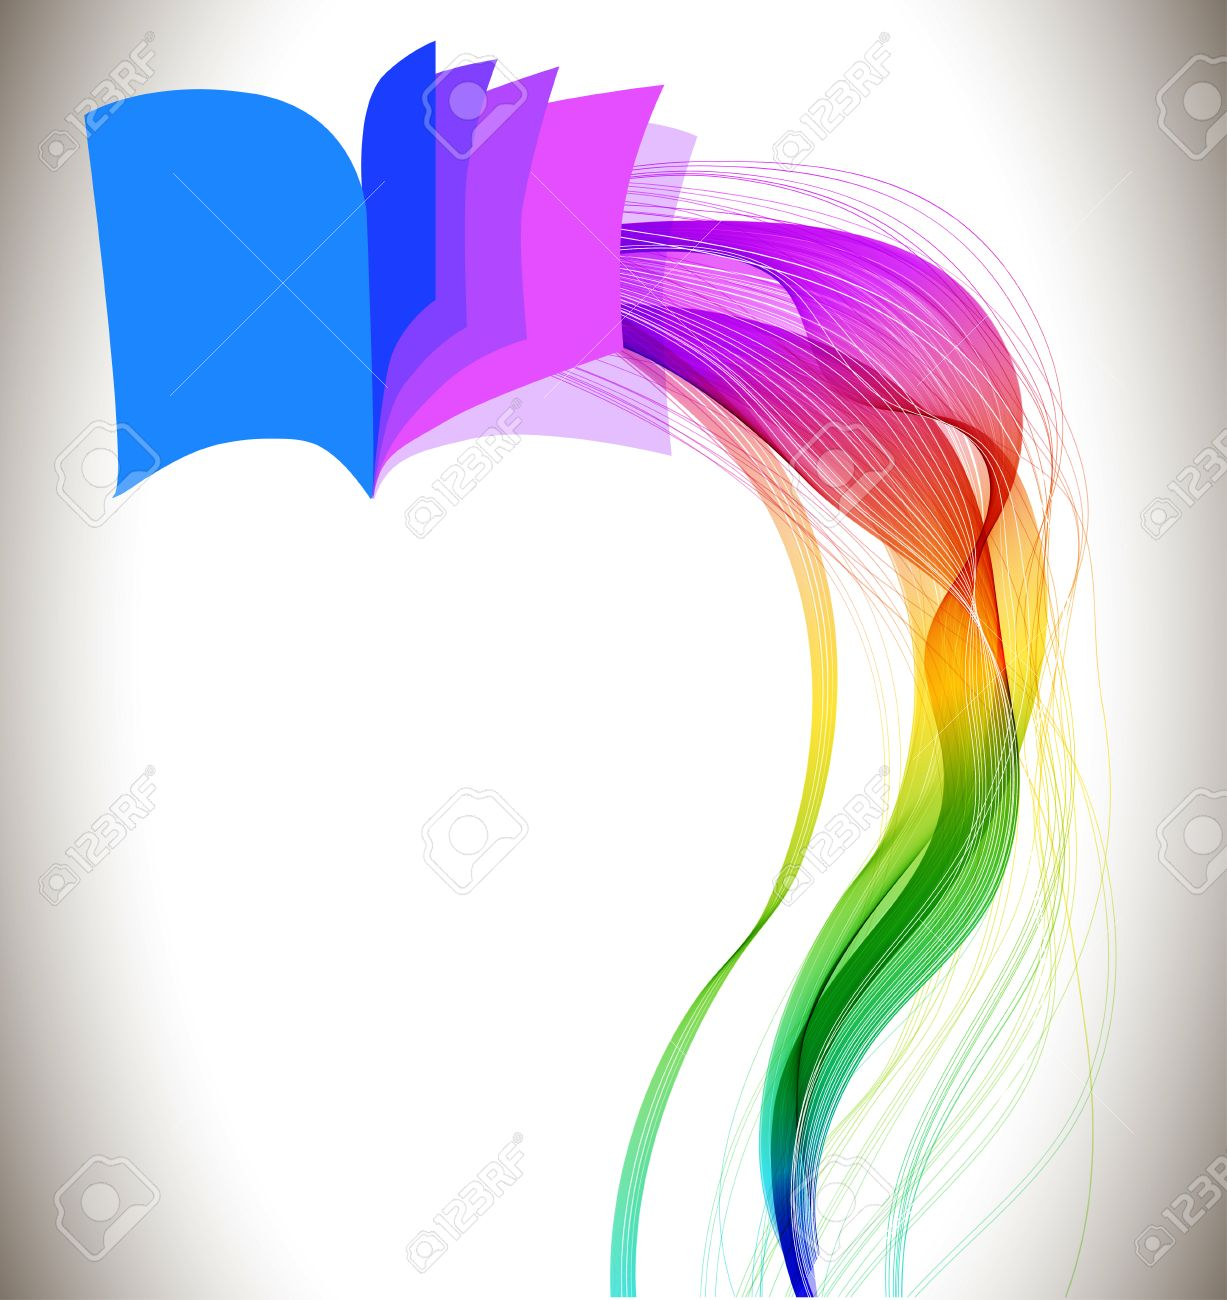 abstract colorful background book icon and wave education design